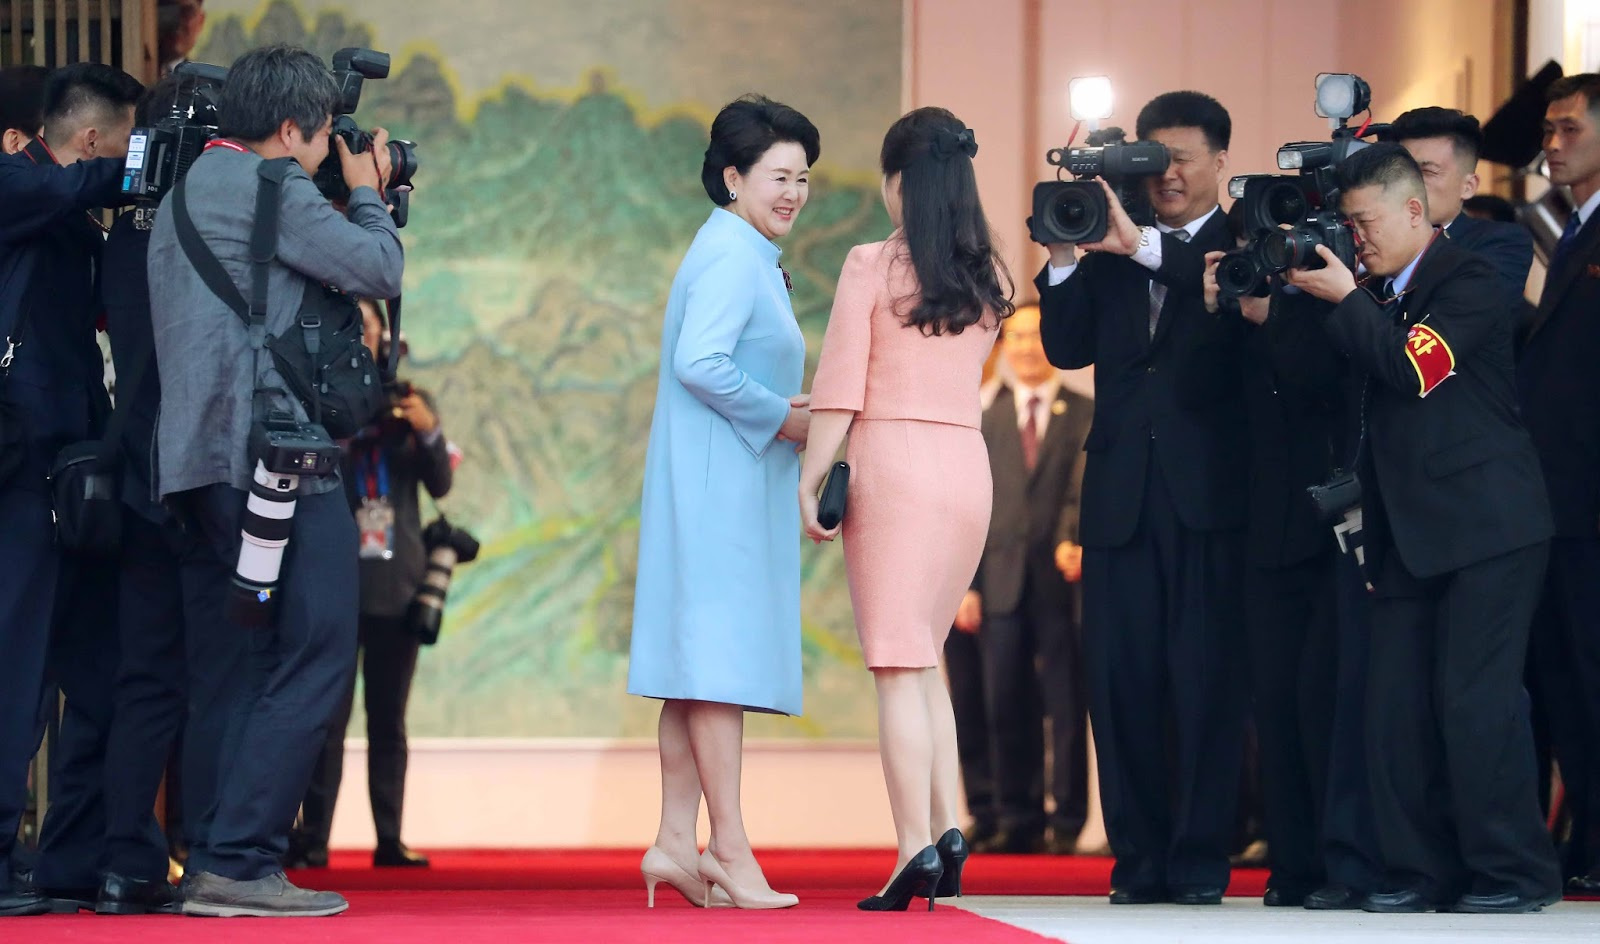 The  two Korea's first ladies' first-ever meeting with one another, and the seemingly instant bond they formed. The two wives shake hands before starting the banquet.